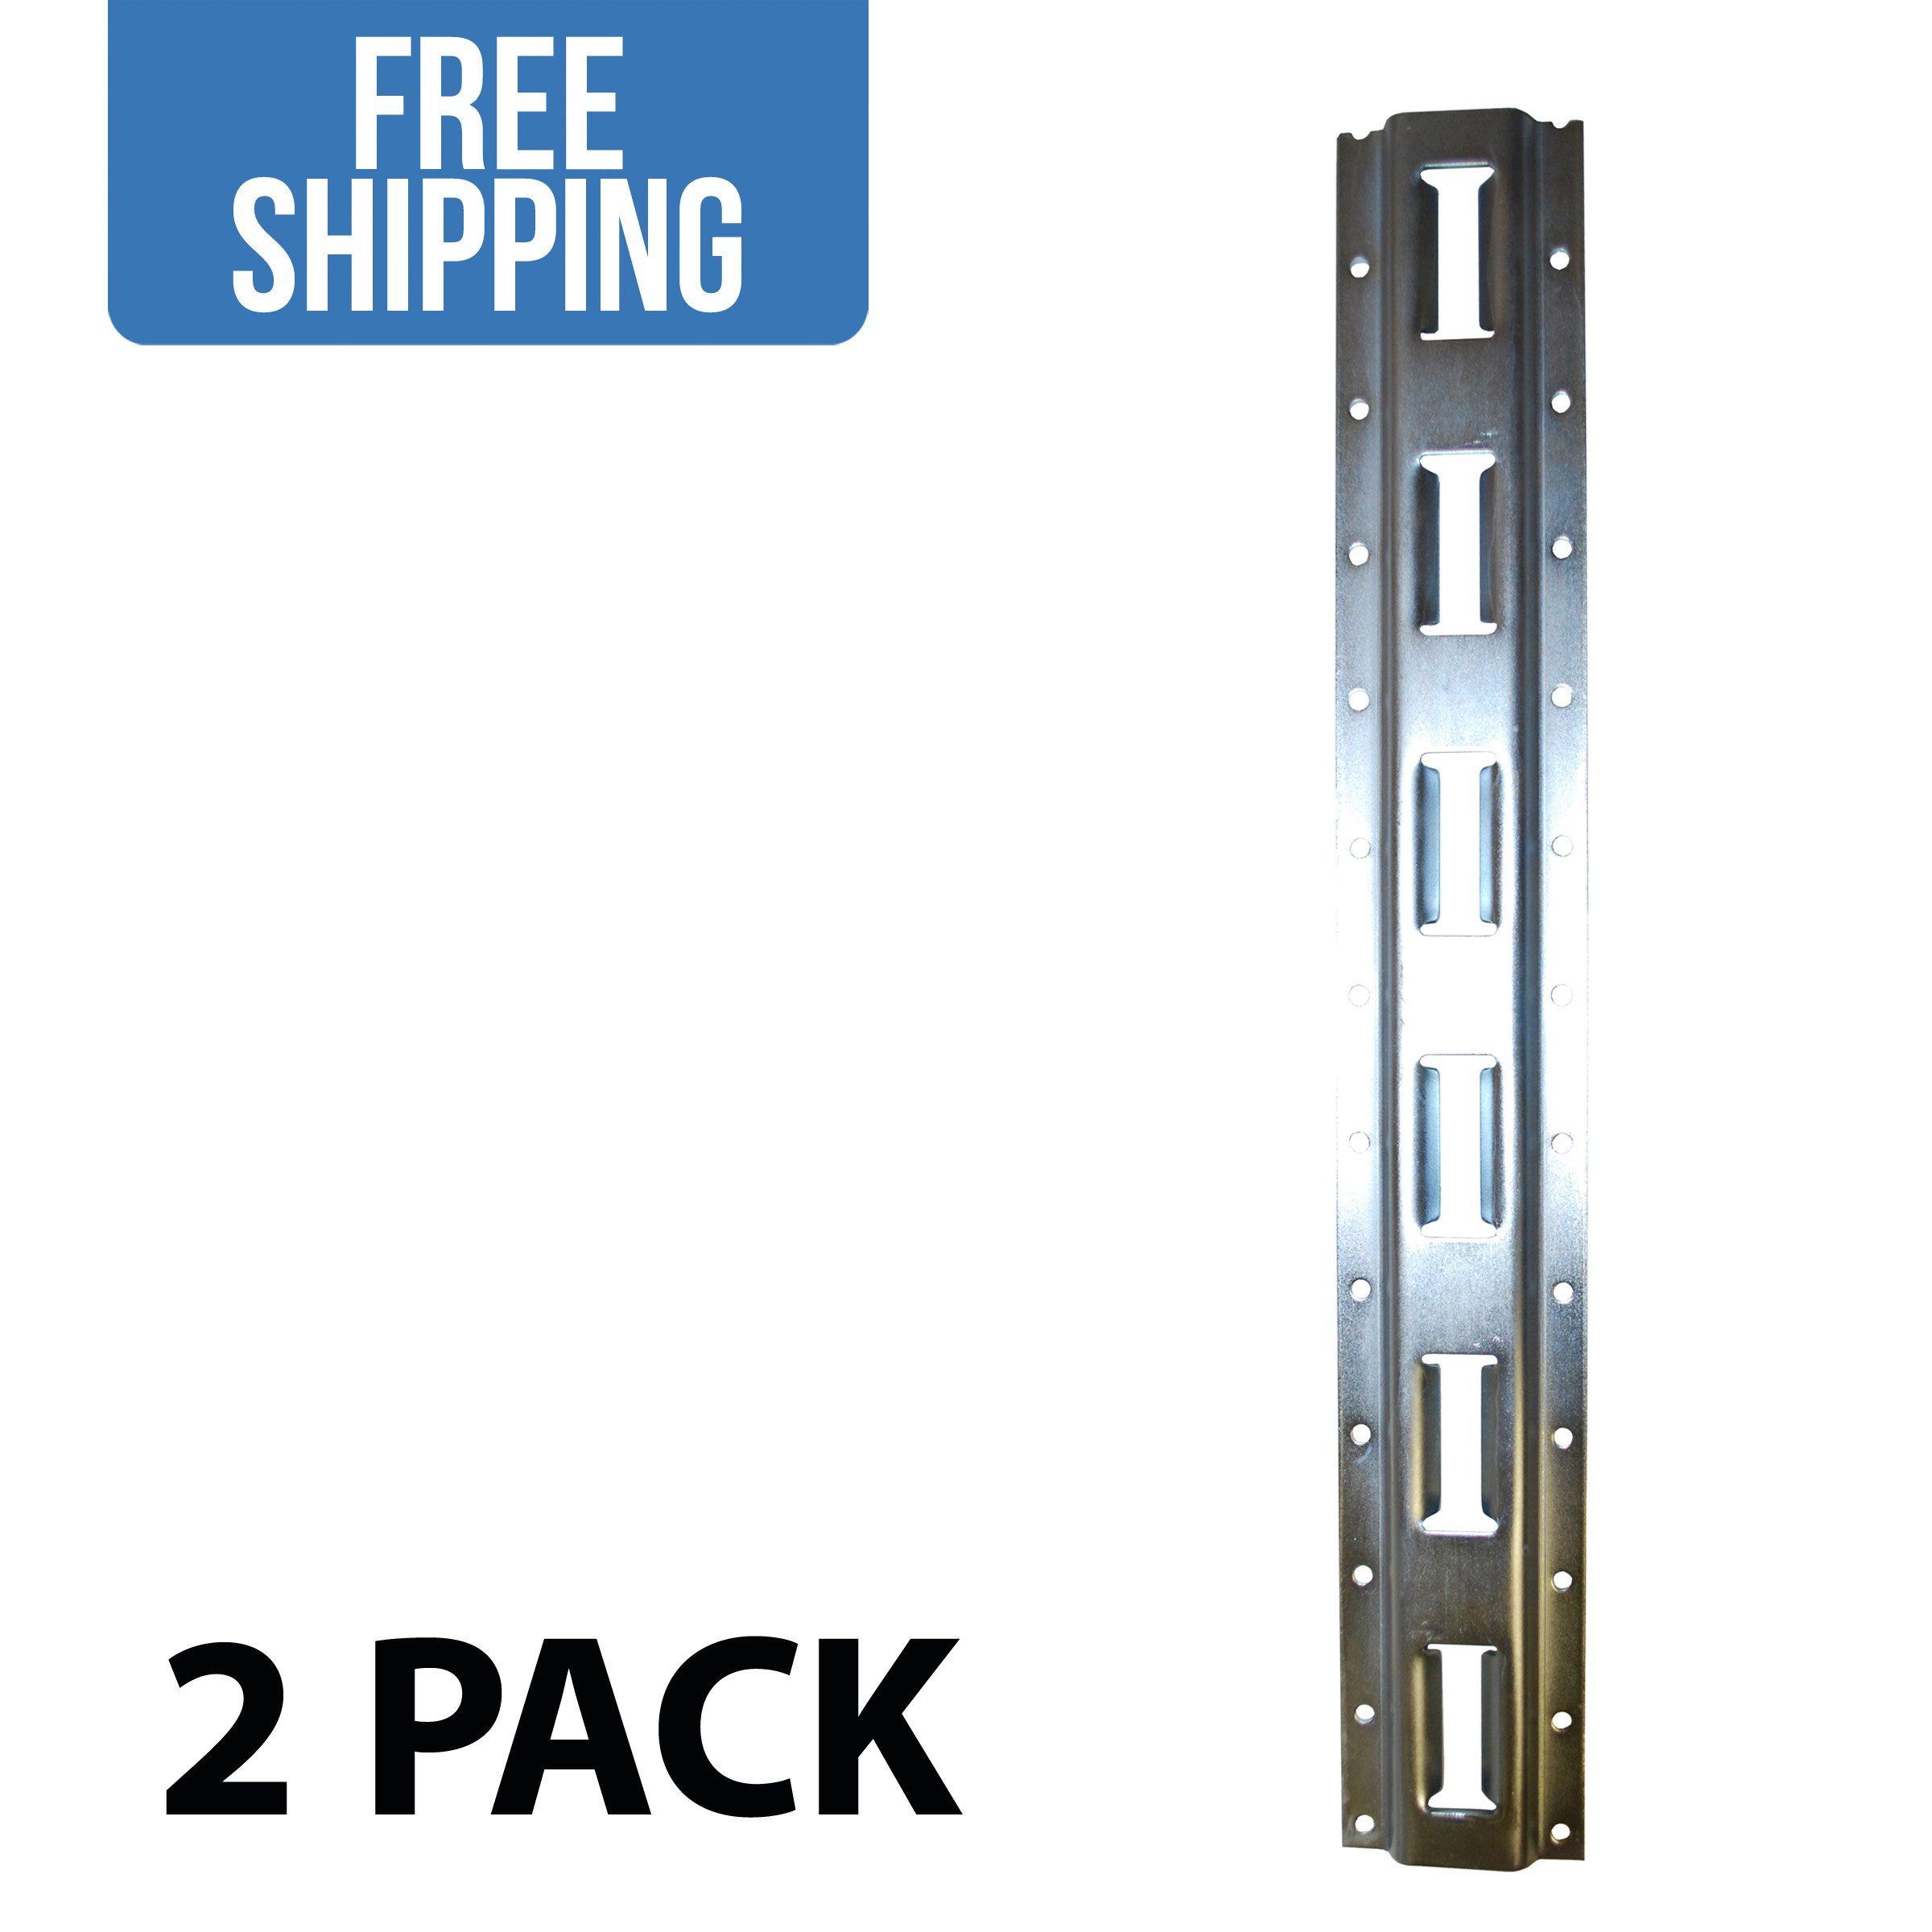 8' Vertical E-Track - 2 PACK - Shippers Supplies - Tie Down Rail Made with 12 Gauge Galvanized Steel for Securing Cargo in Your Trailer, Van, Pickup Truck and More!